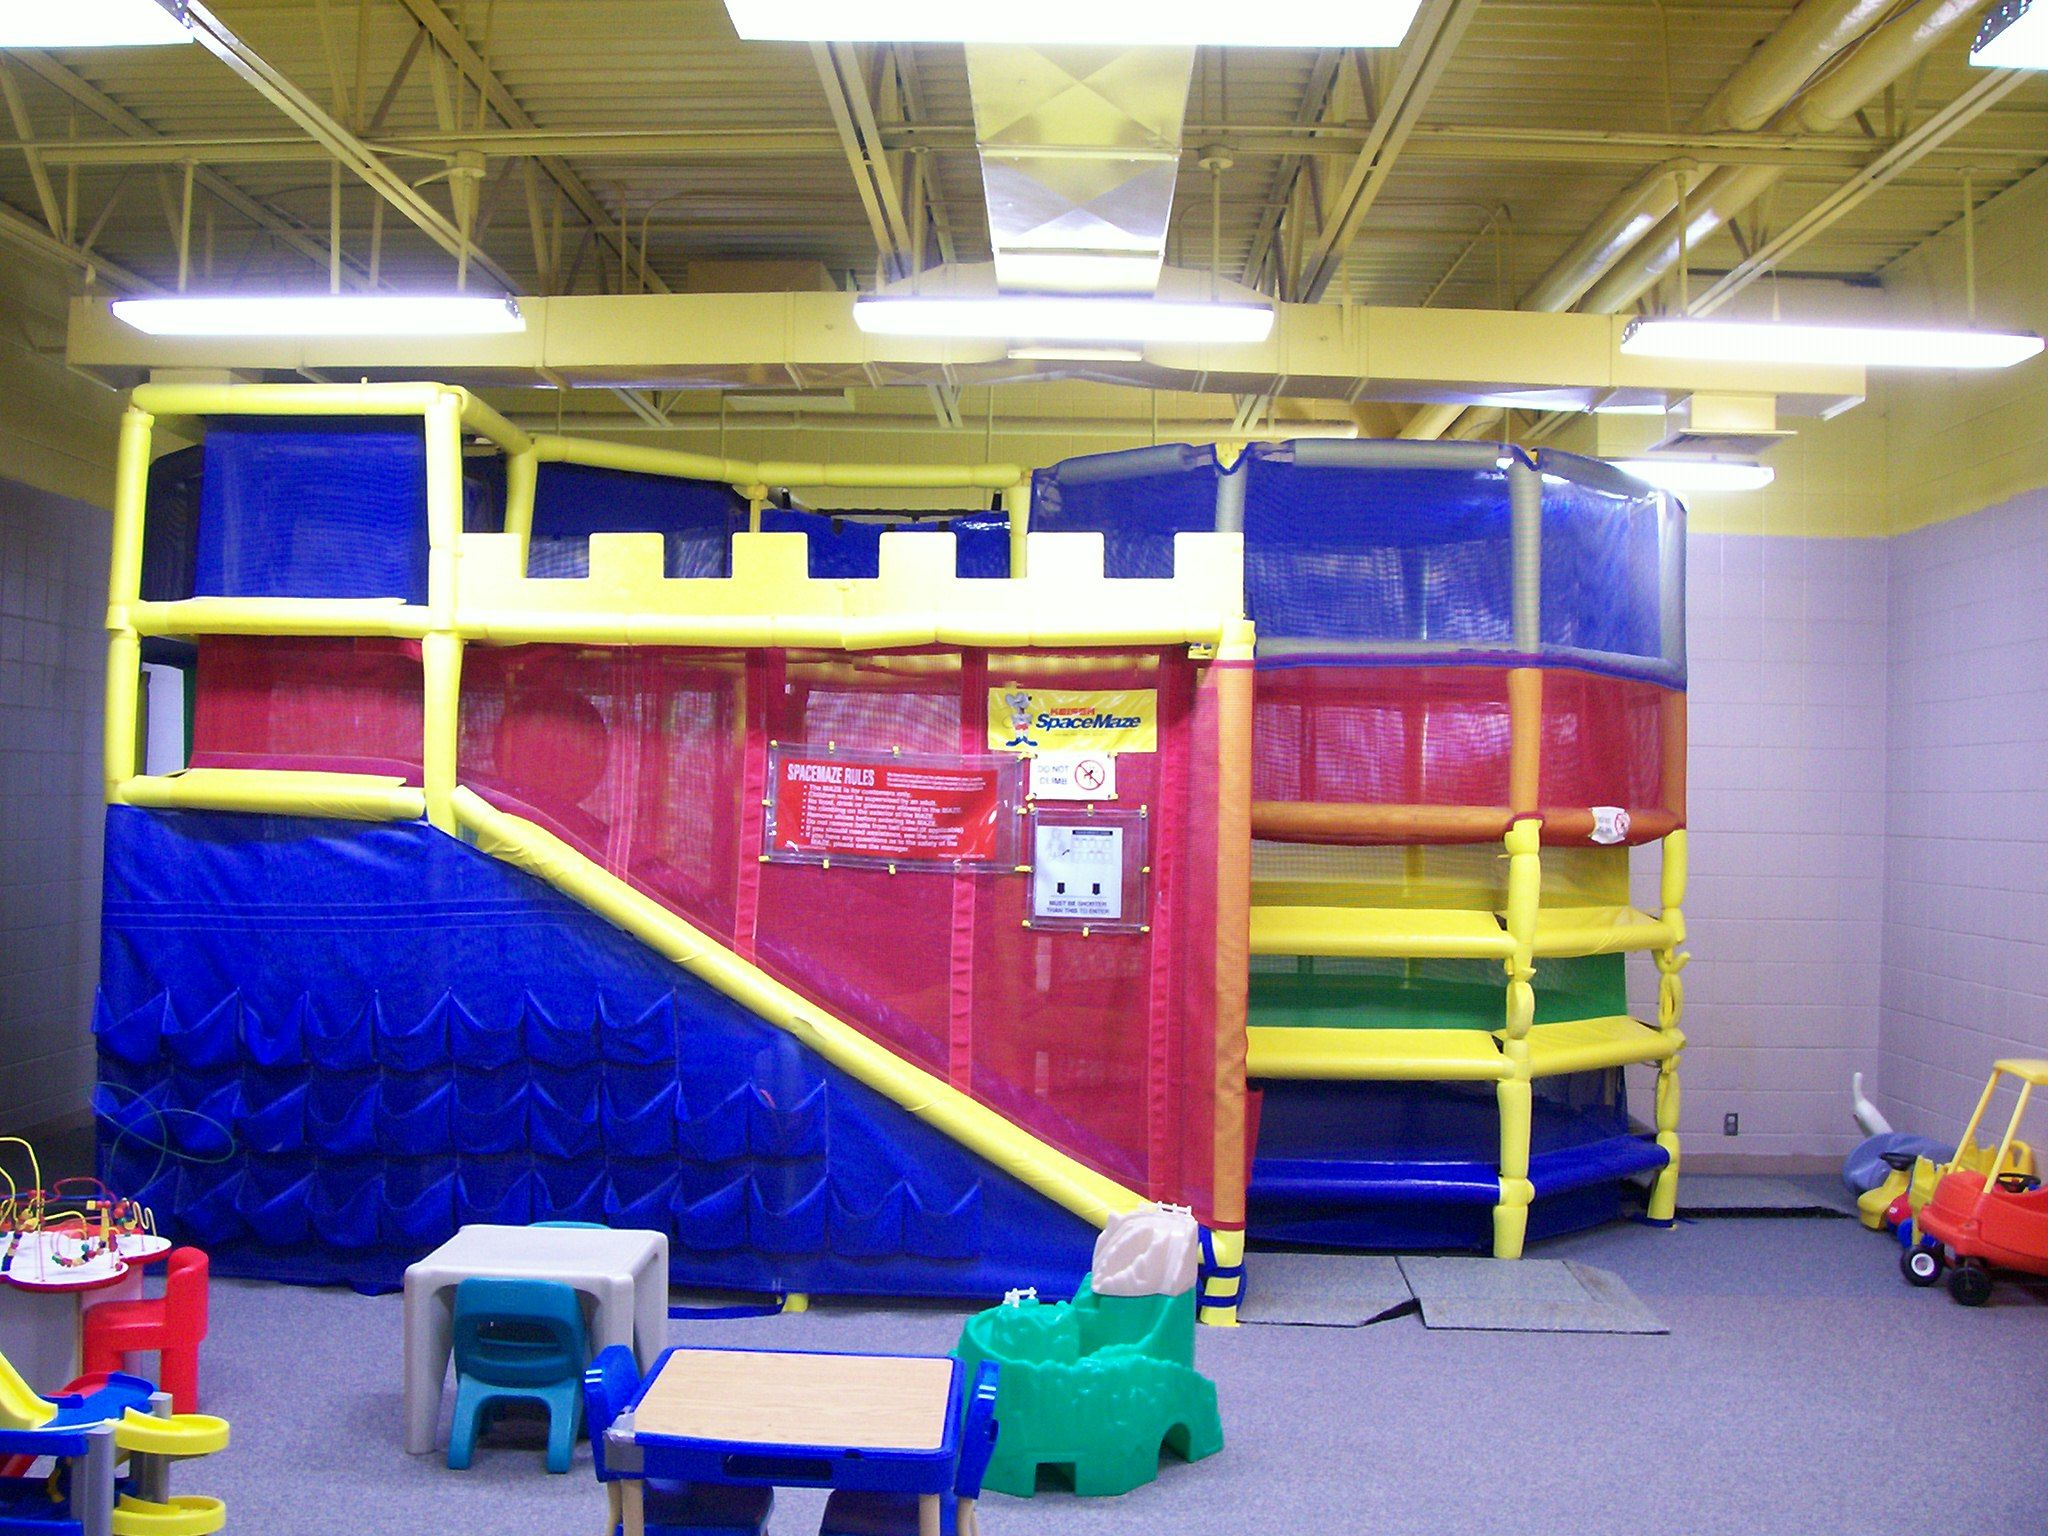 Creative loft bed ideas  Kids Room Active And Creative Loft Bed In Kid Play Room Idea For